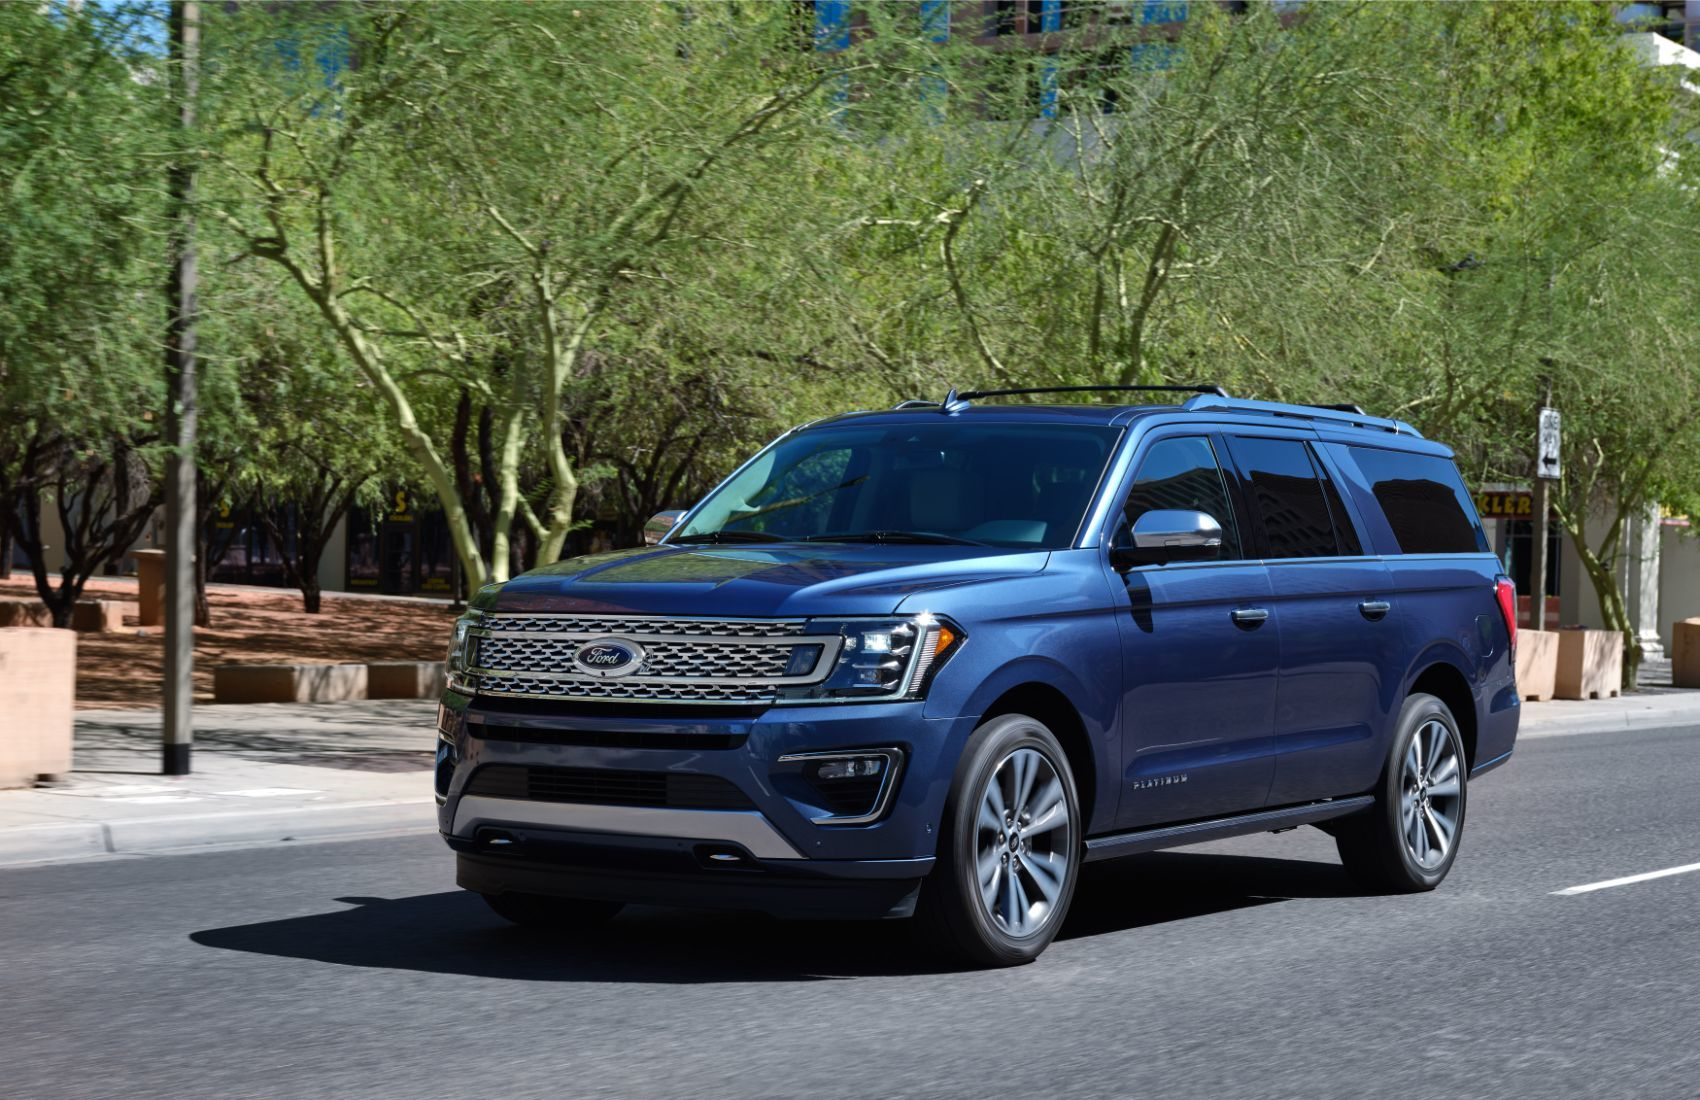 Ford Expedition: Here's What's New For 2020 15